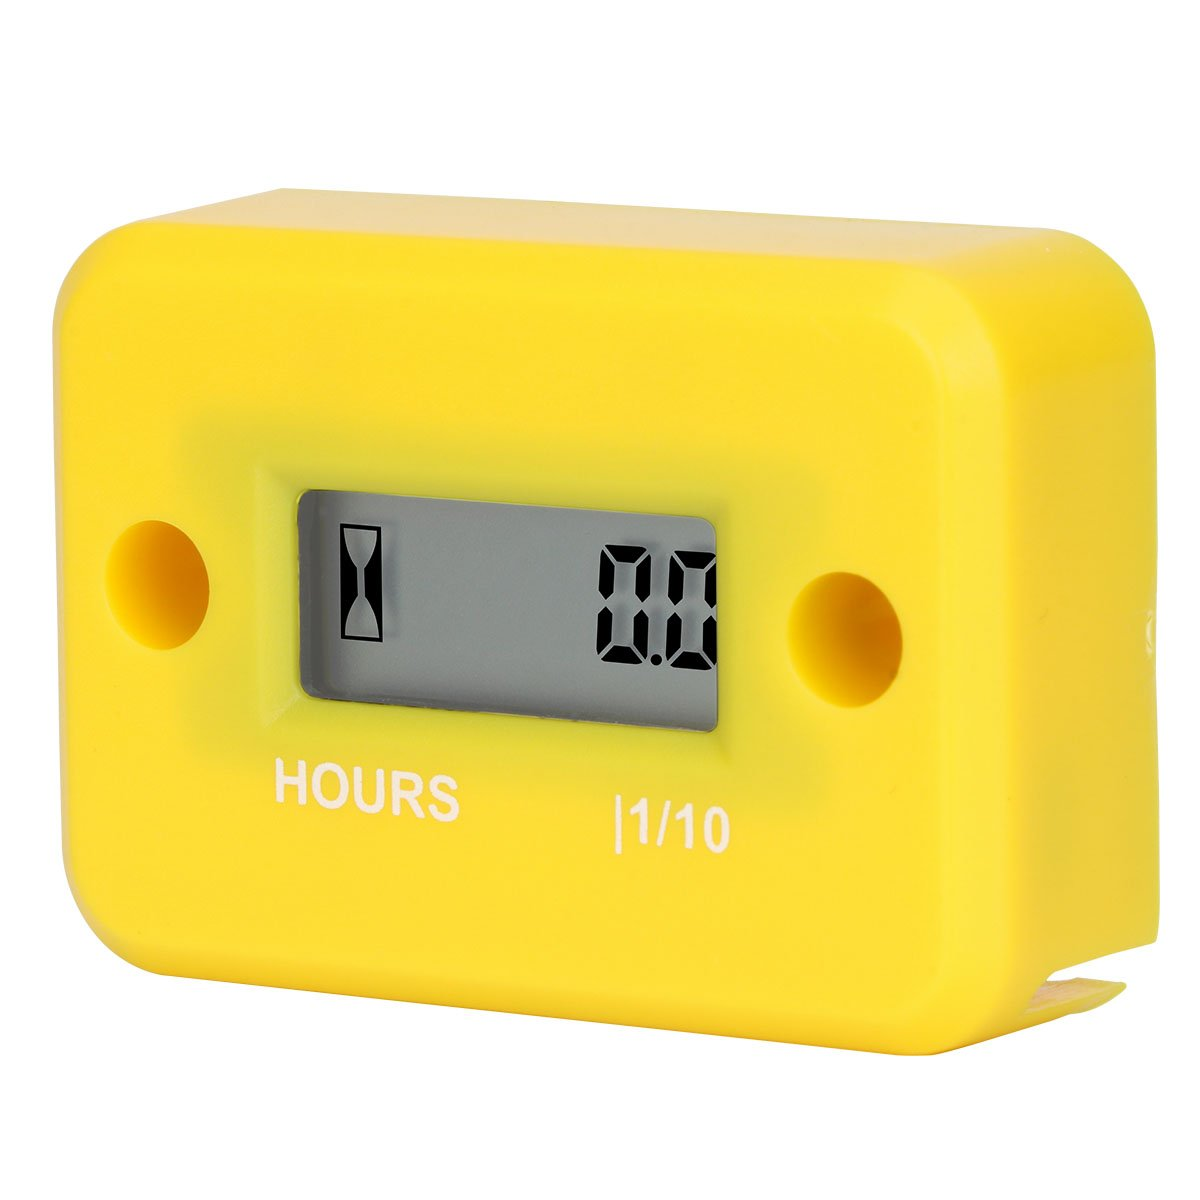 Aimila Digital Engine Hour Meter Inductive LCD Waterproof Hourmeter for Motorcycle (Yellow) by Aimila